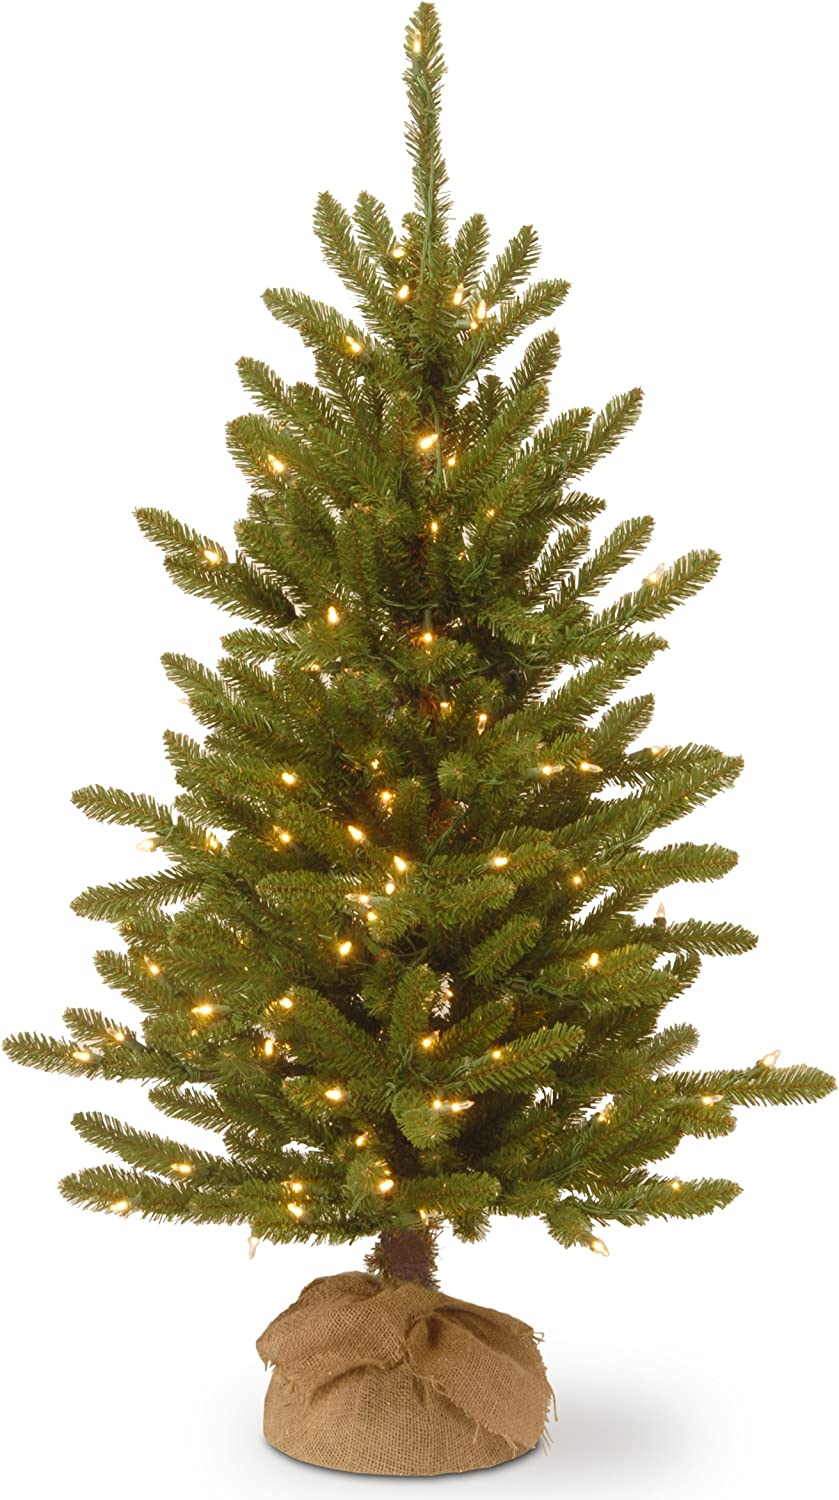 National Tree Company Pre-lit Artificial Mini Christmas Tree | Includes Small Lights and Cloth Bag Base | Great For Tabletop or Desk | Kensington Burlap - 4 ft